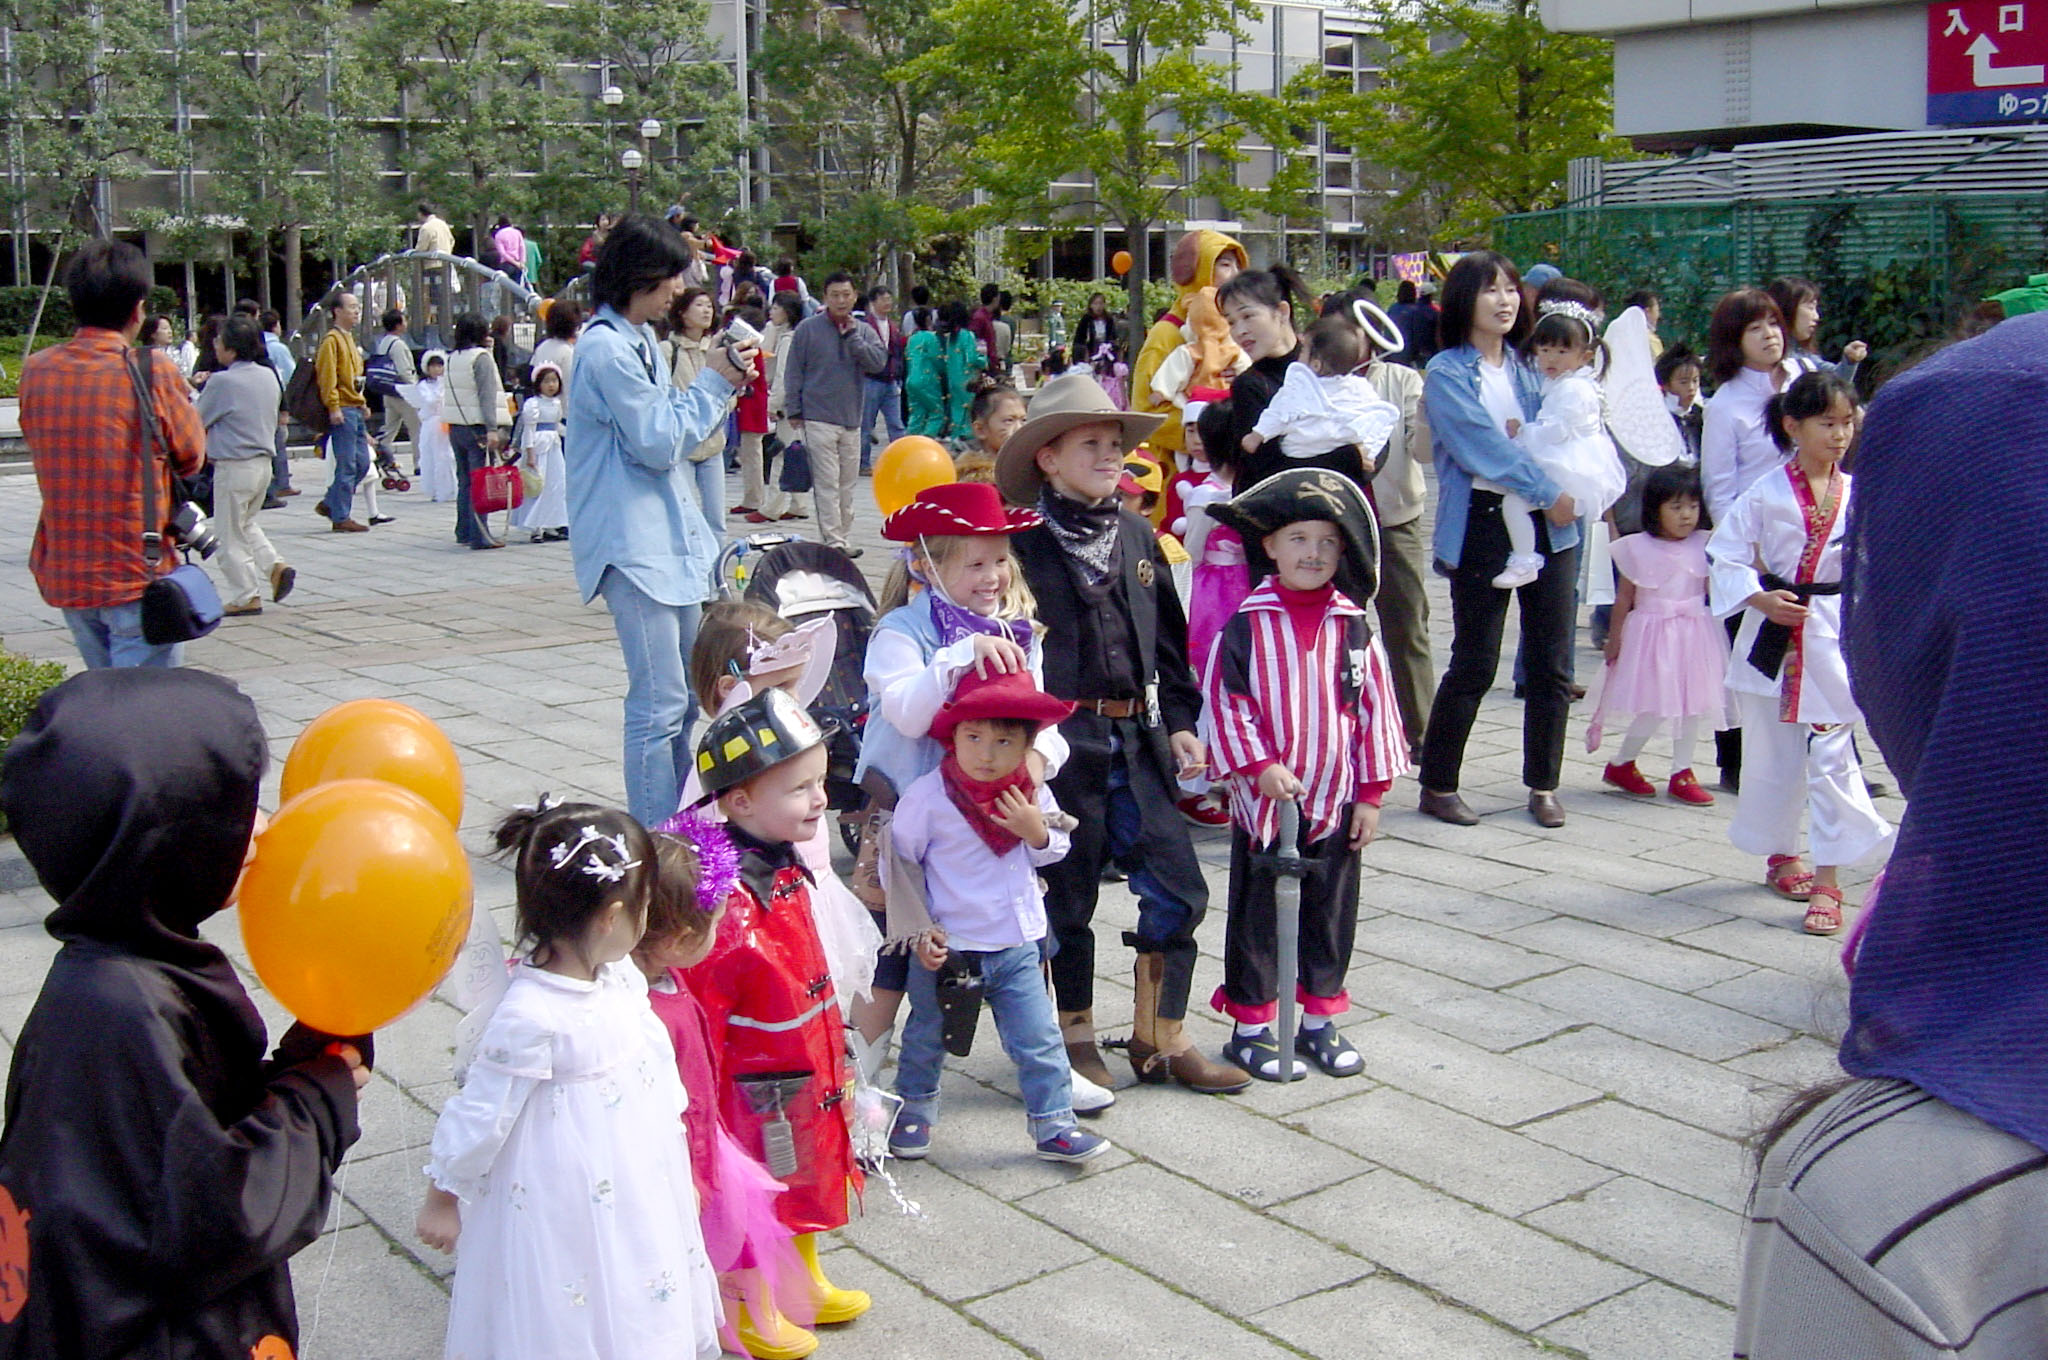 Bringing out the forces: Cowboys, cowgirls, pirates, princesses and a fireman get ready to party at Rokko Island Halloween in Kobe, Hyogo Prefecture.